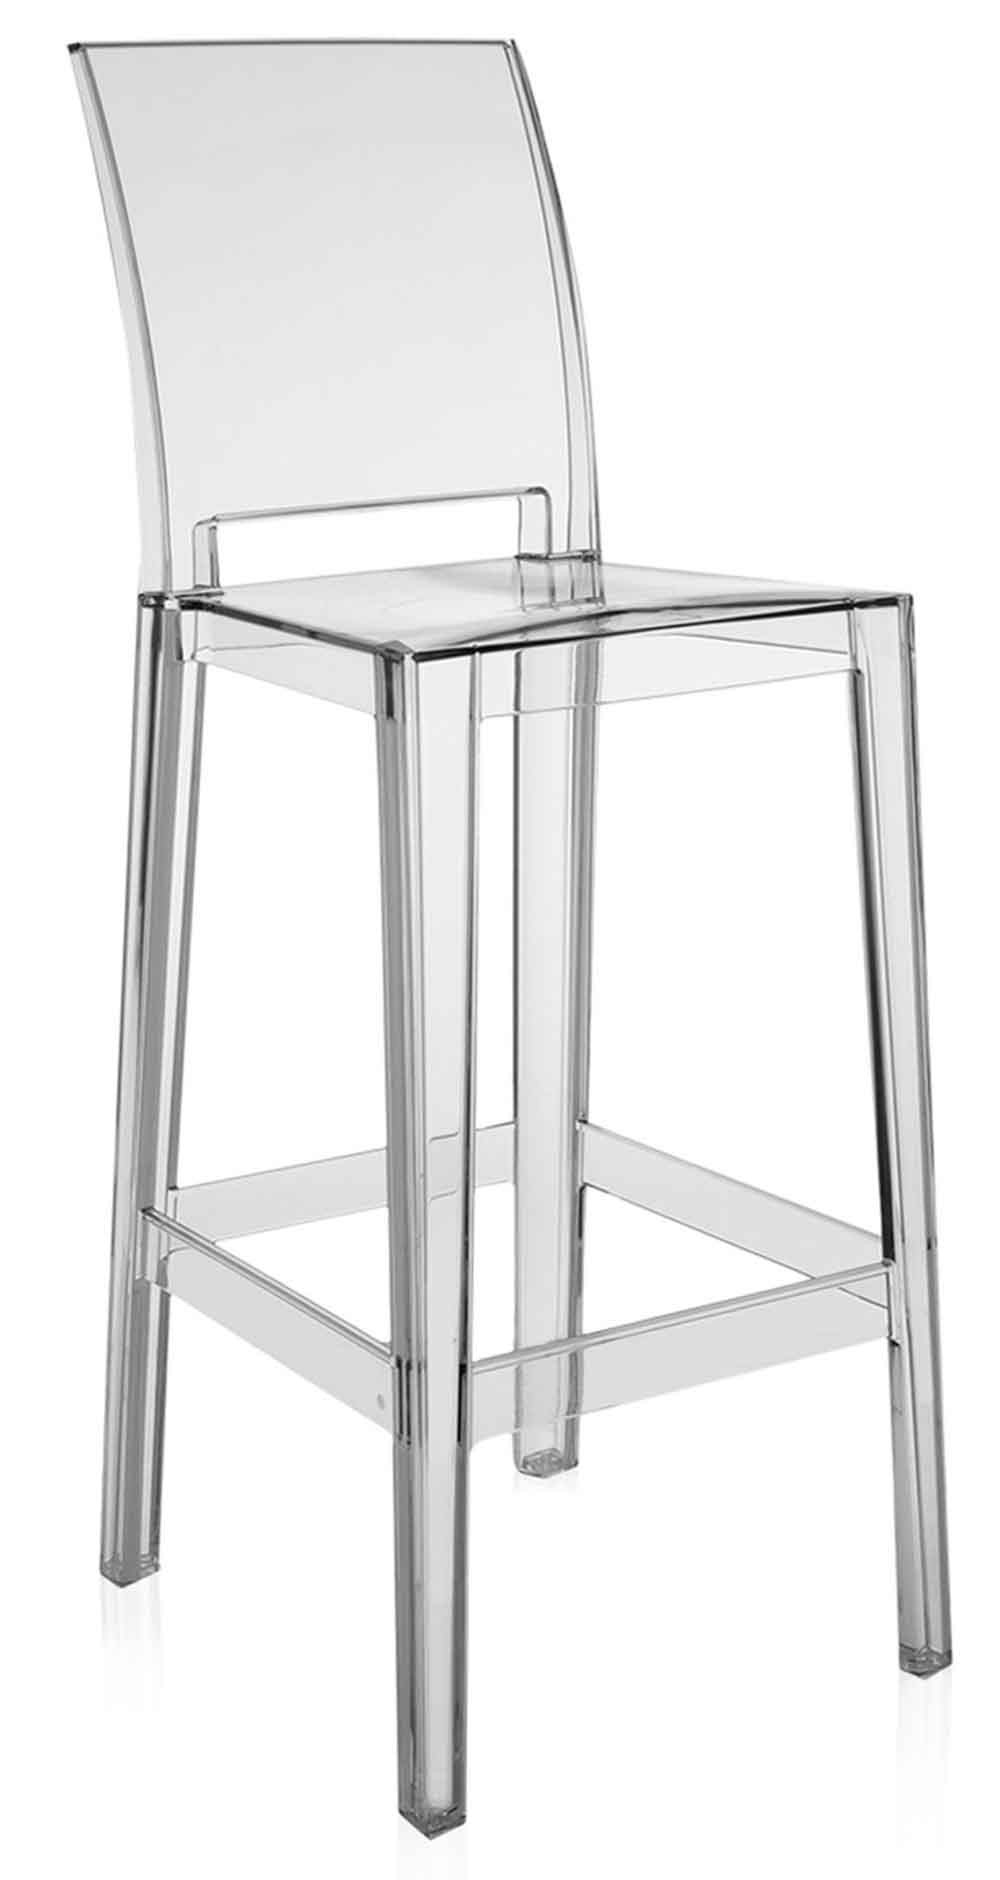 Sgabelli Kartell Prezzi.Sgabello One More Please Kartell